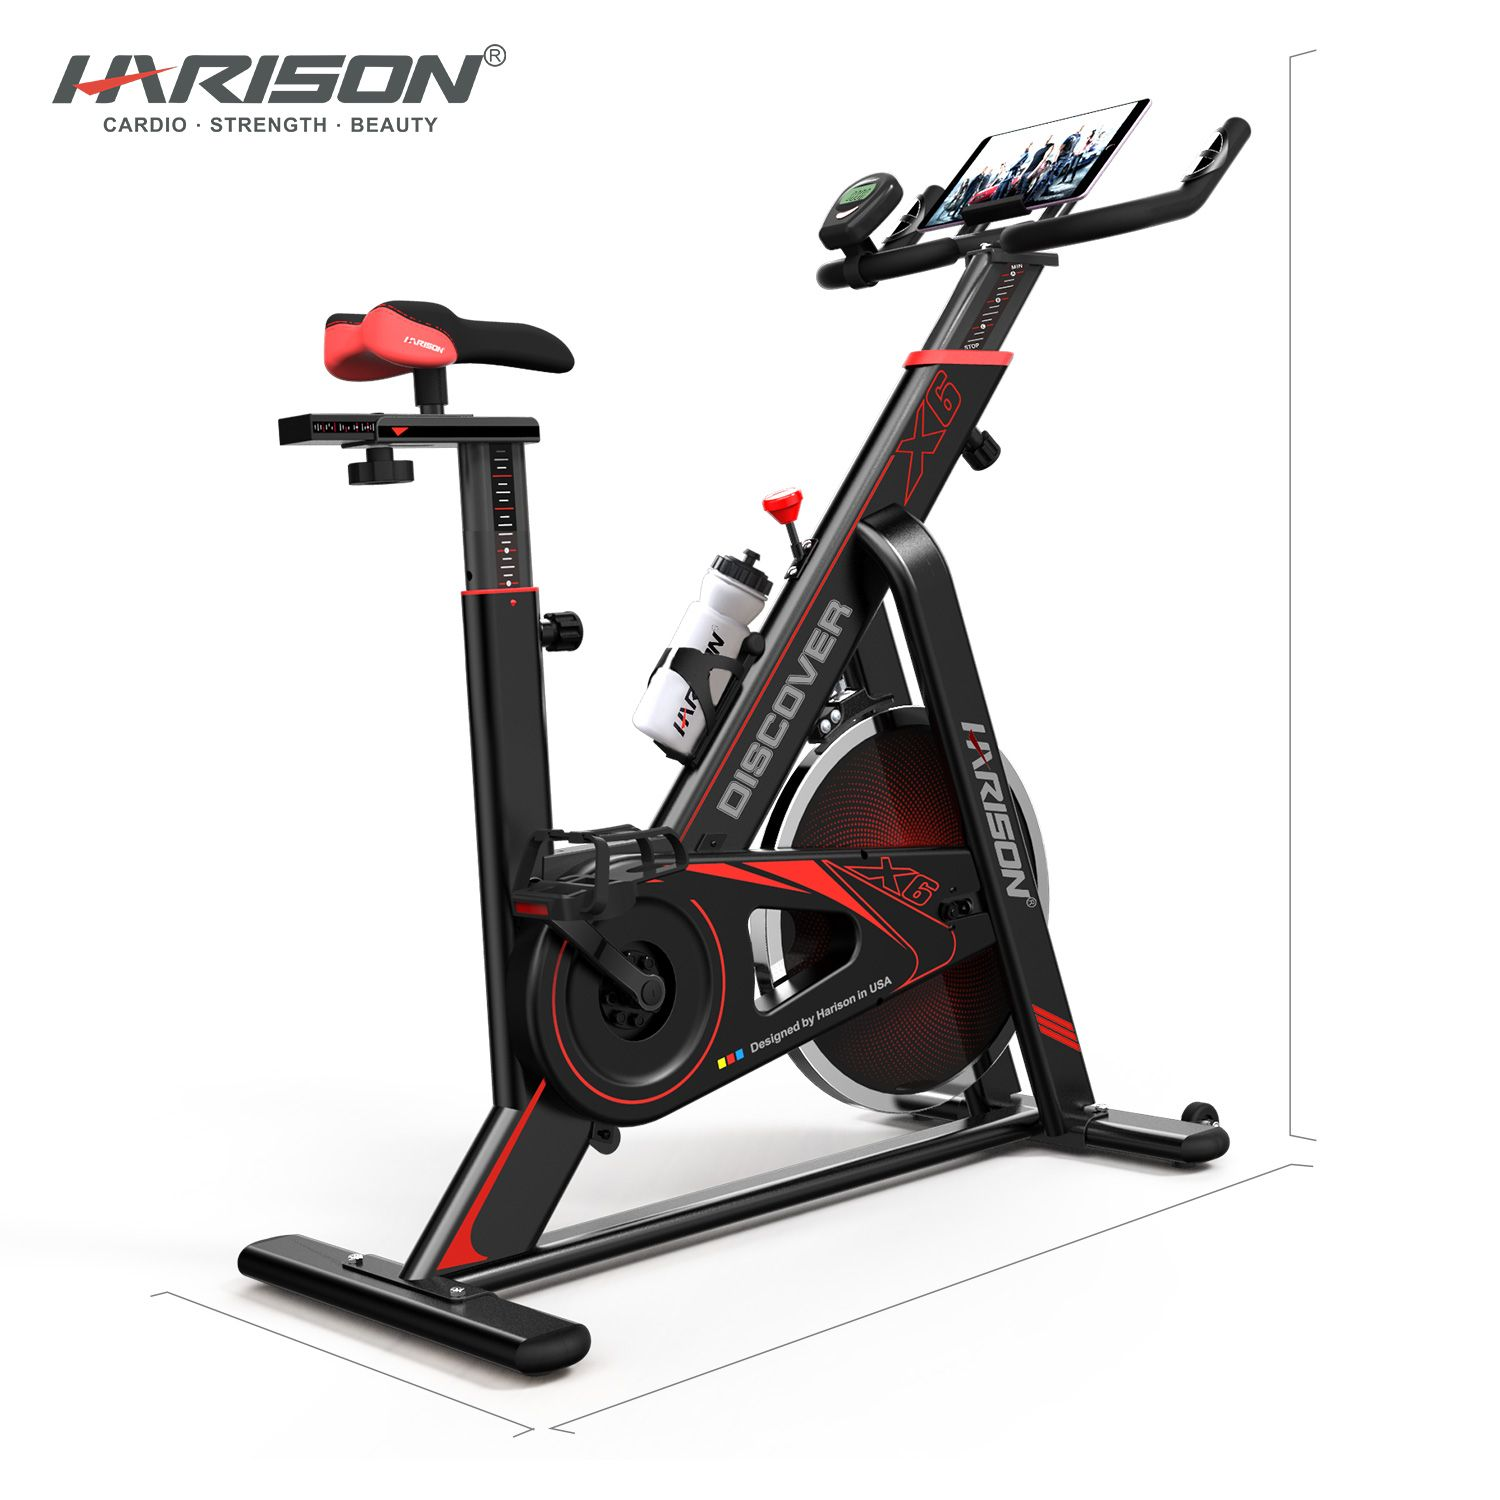 Harison X6 Exercise Bike With Images Biking Workout Bike